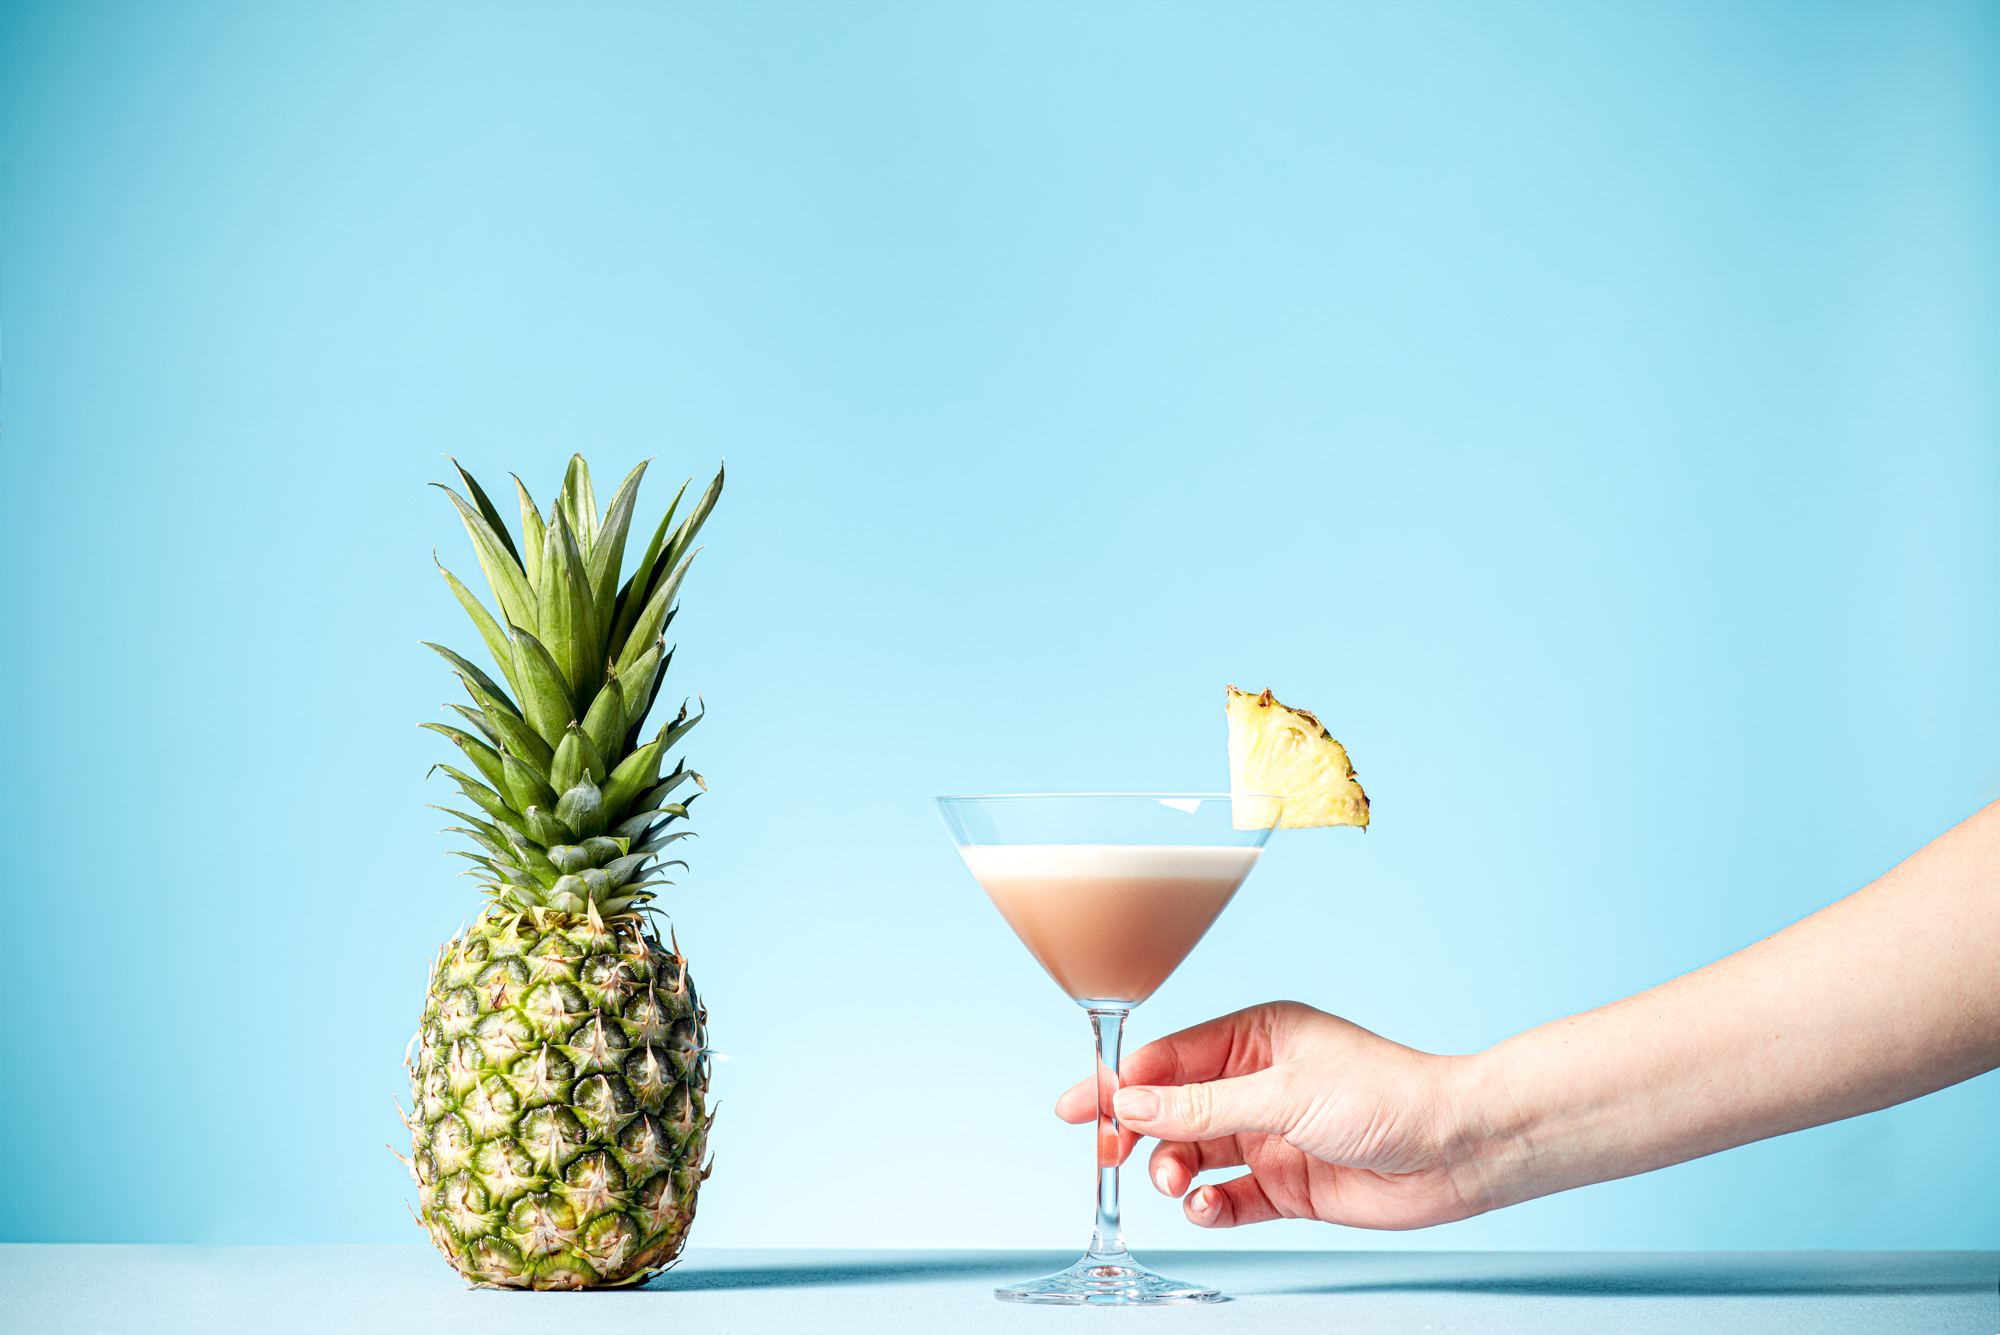 French Martini by drinks photographer represented by Lisa Pritchard Agency